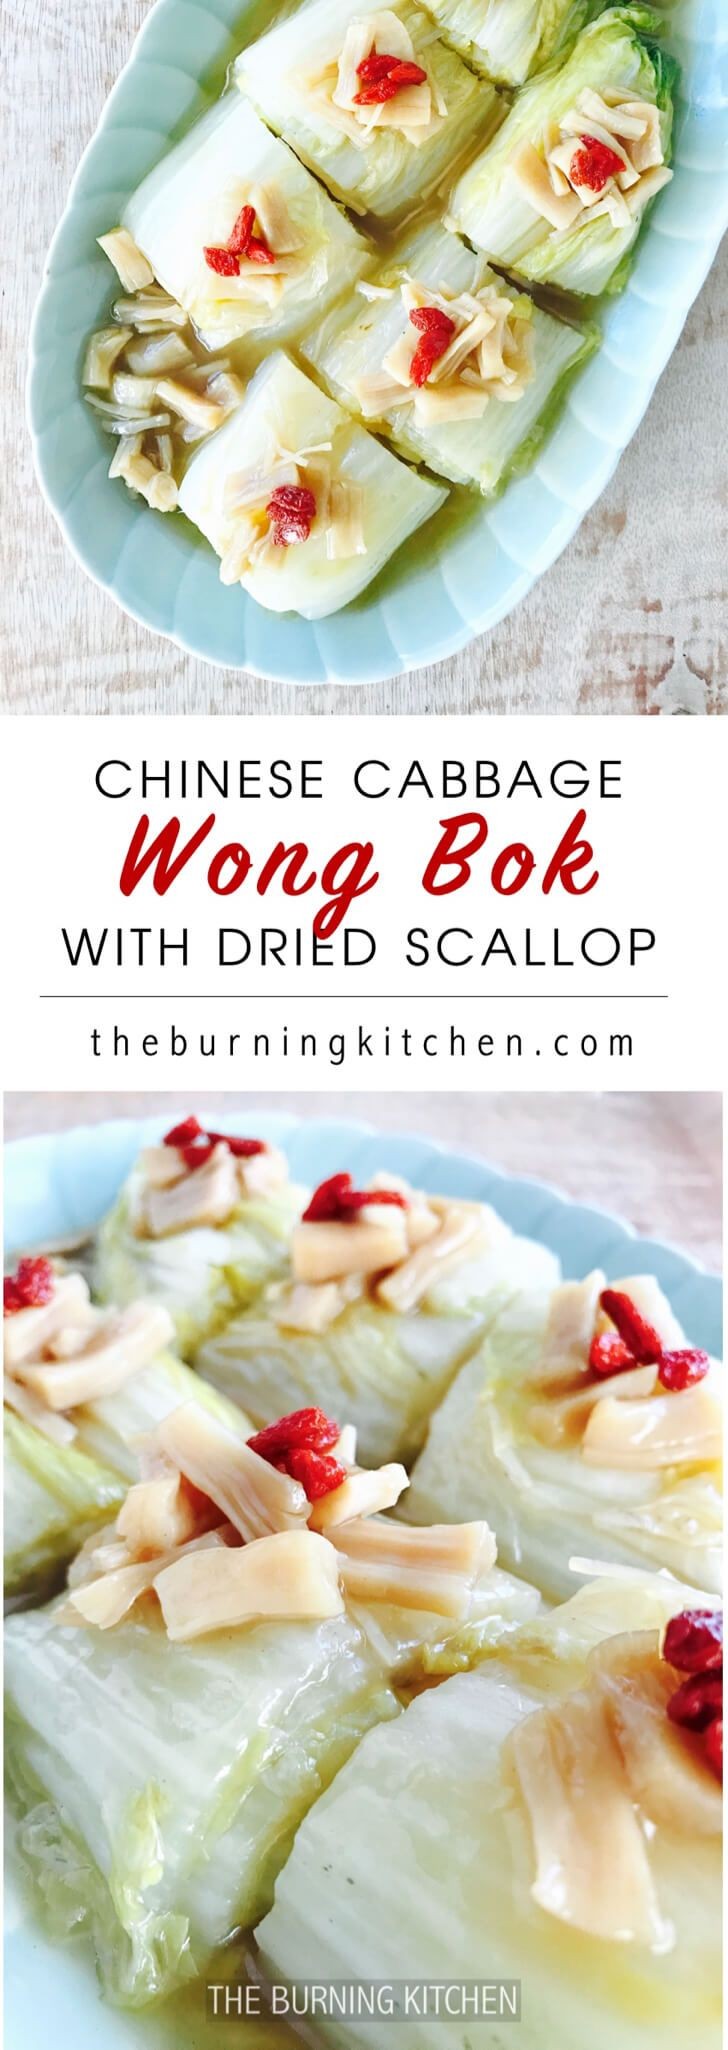 Braised Napa Cabbage (Wong Bok) with Dried Scallops: A light healthy dish of sweet cabbage and prized dried scallop braised in a umami-rich gravy made by first caramelising the natural sugars of the cabbage and then deglazing the wok with the essence of the dried scallops. via @burning kitchen